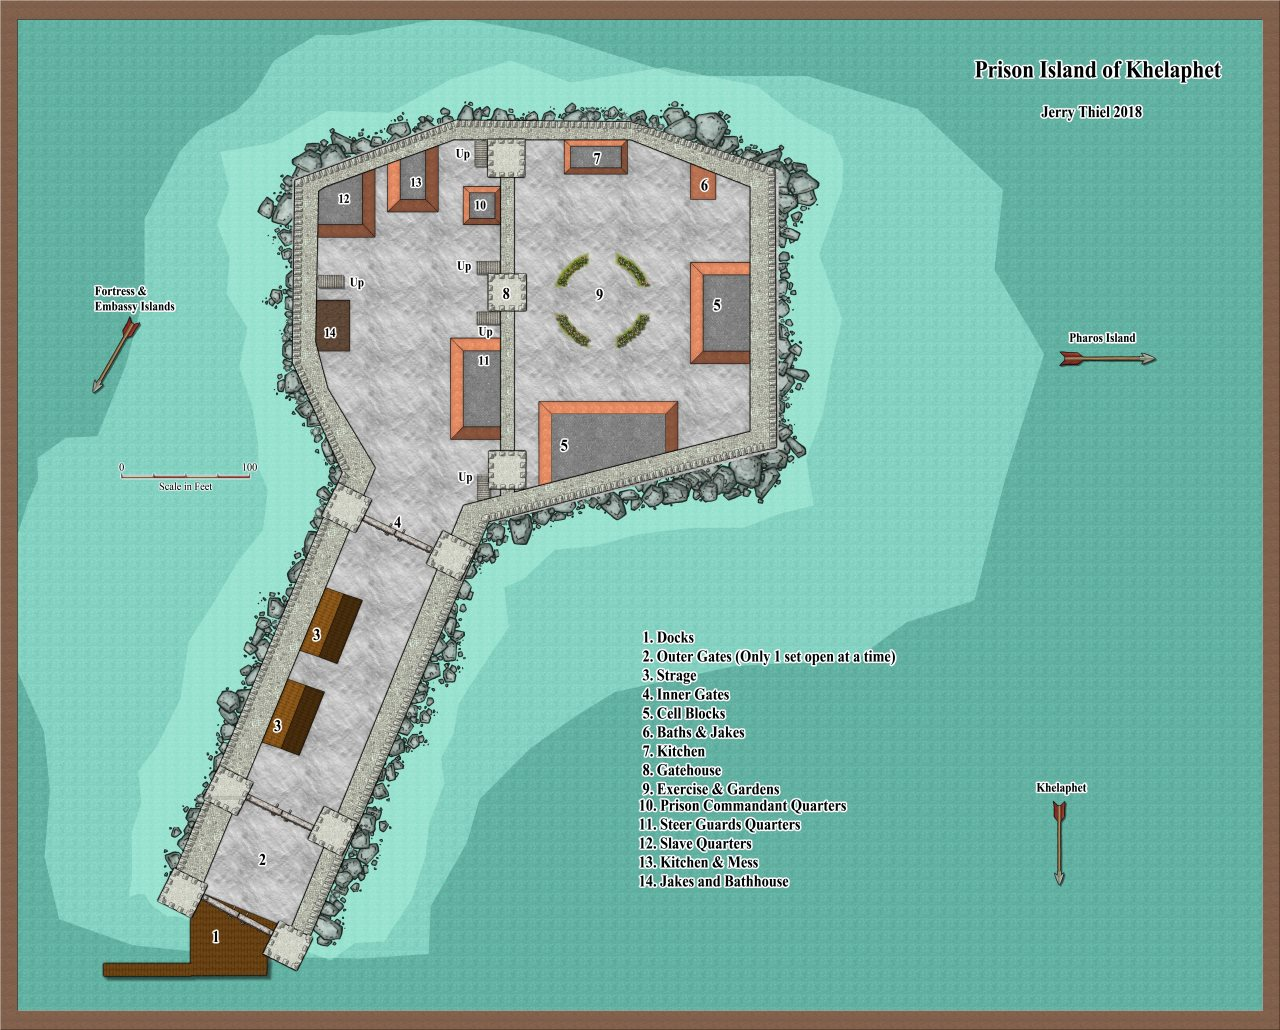 Nibirum Map: Prison Island of Khelaphet by Jerry Thiel